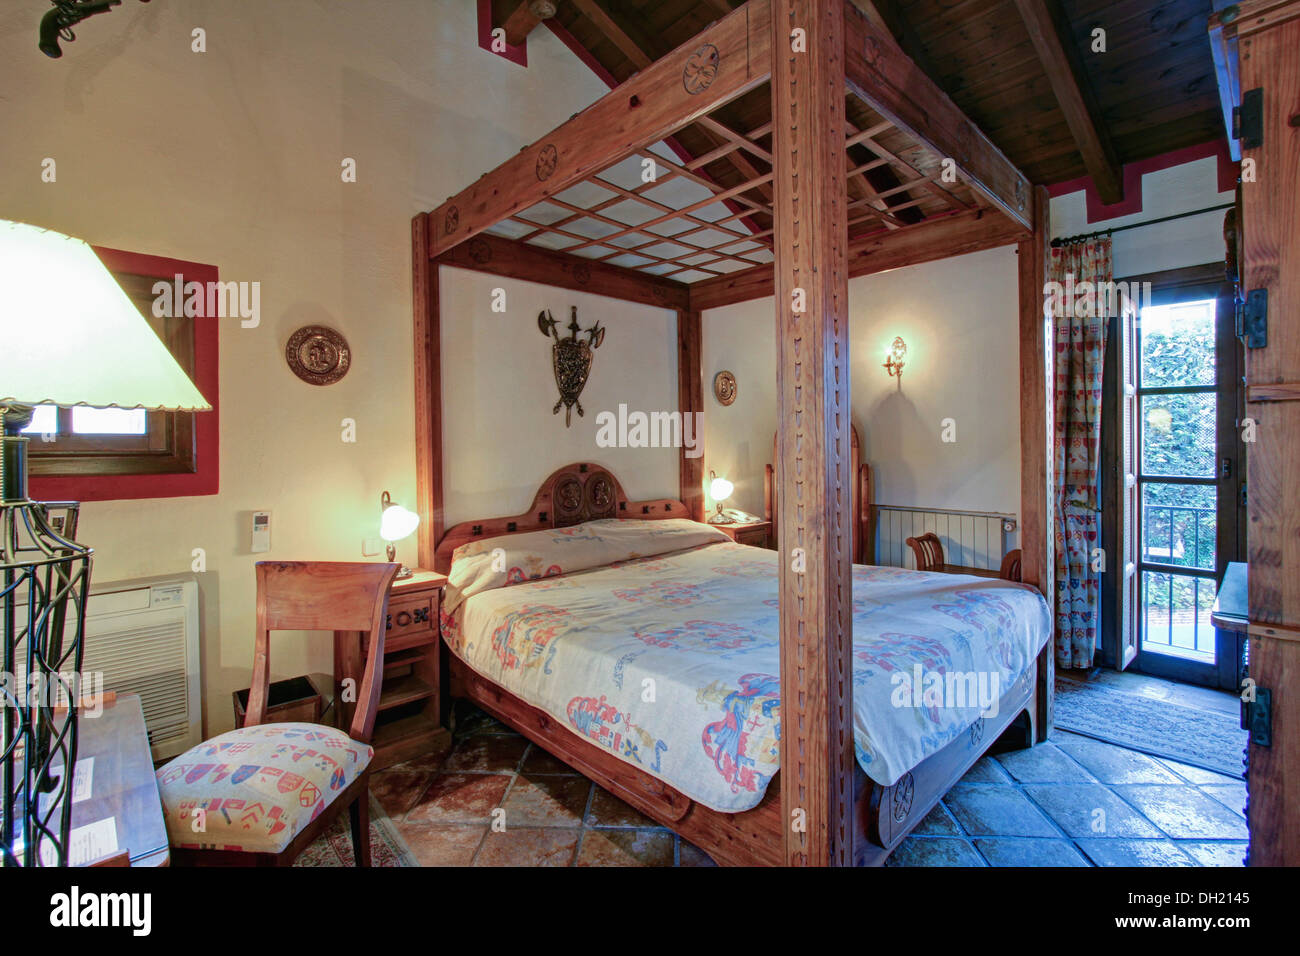 rustic wooden four-poster bed in bedroom in spanish country villa